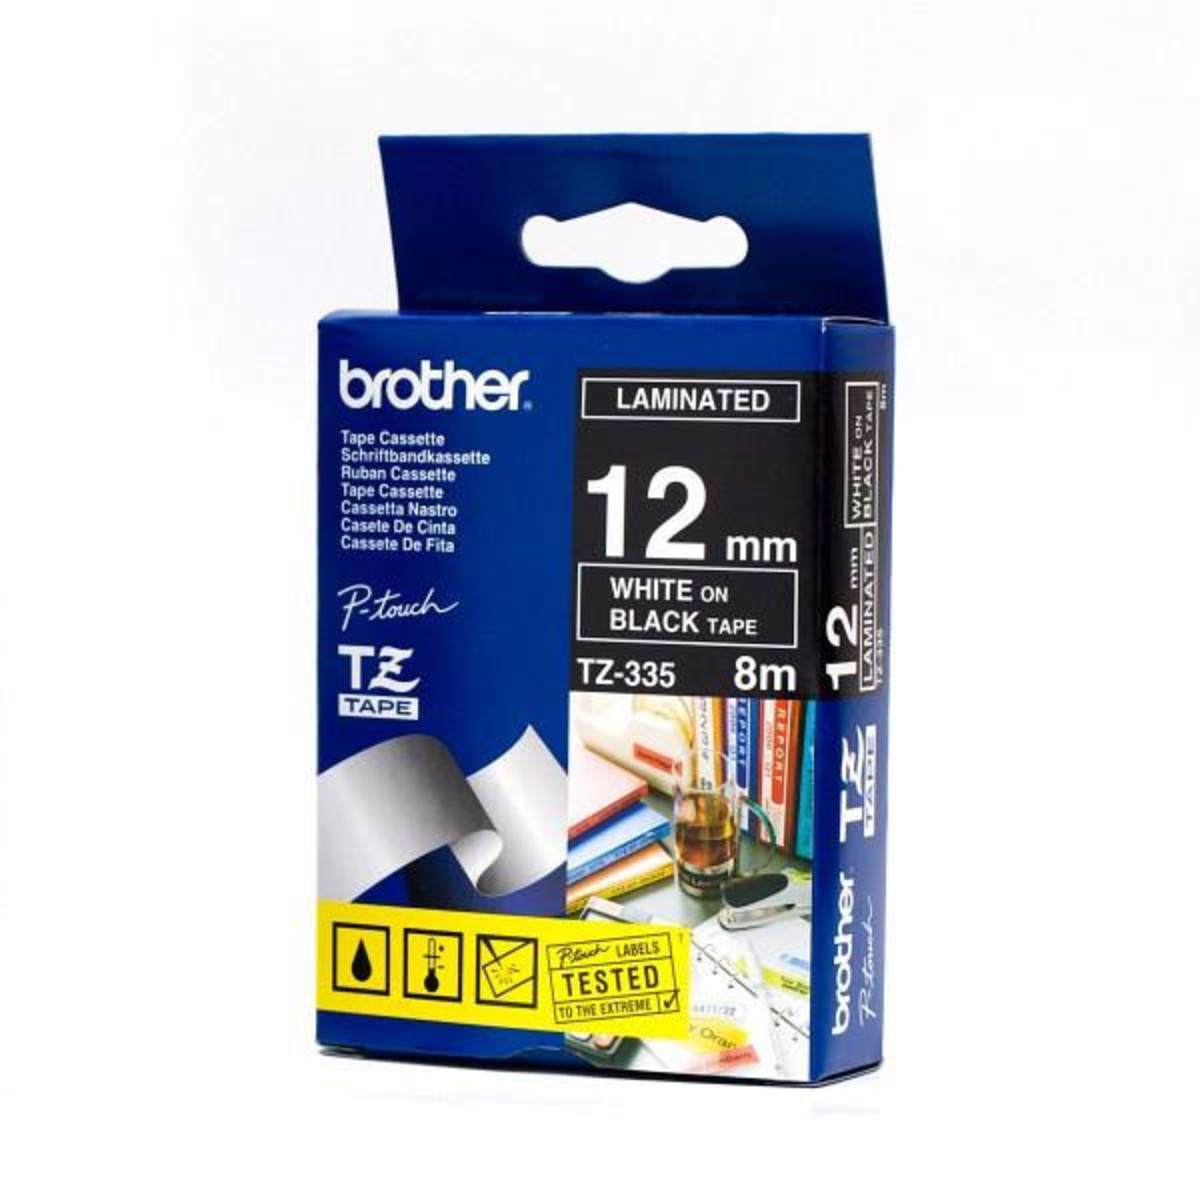 Brother TZ-335 12mm White on Black Tape